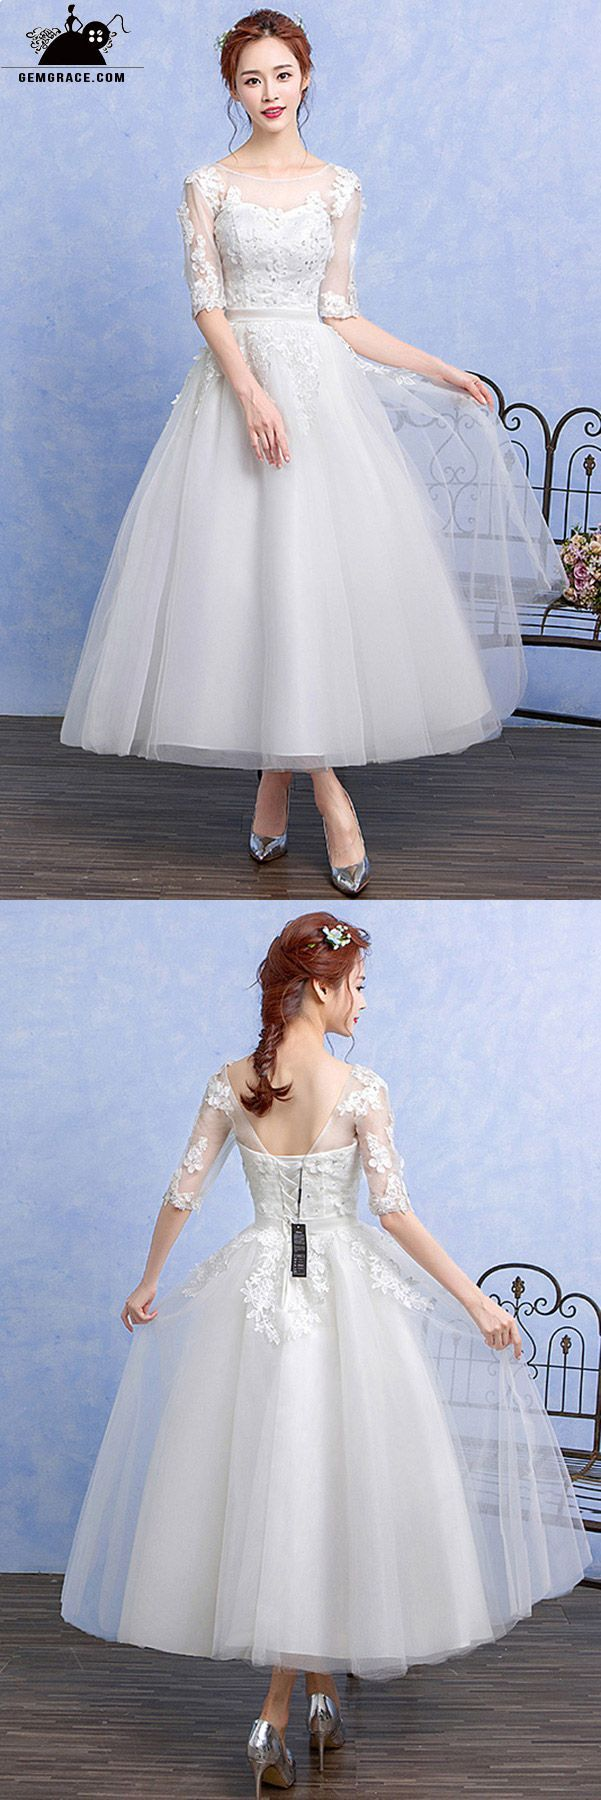 Wedding dress for older bride  Tea Length Beaded Wedding Dress with Sheer Half Sleeves  Mature